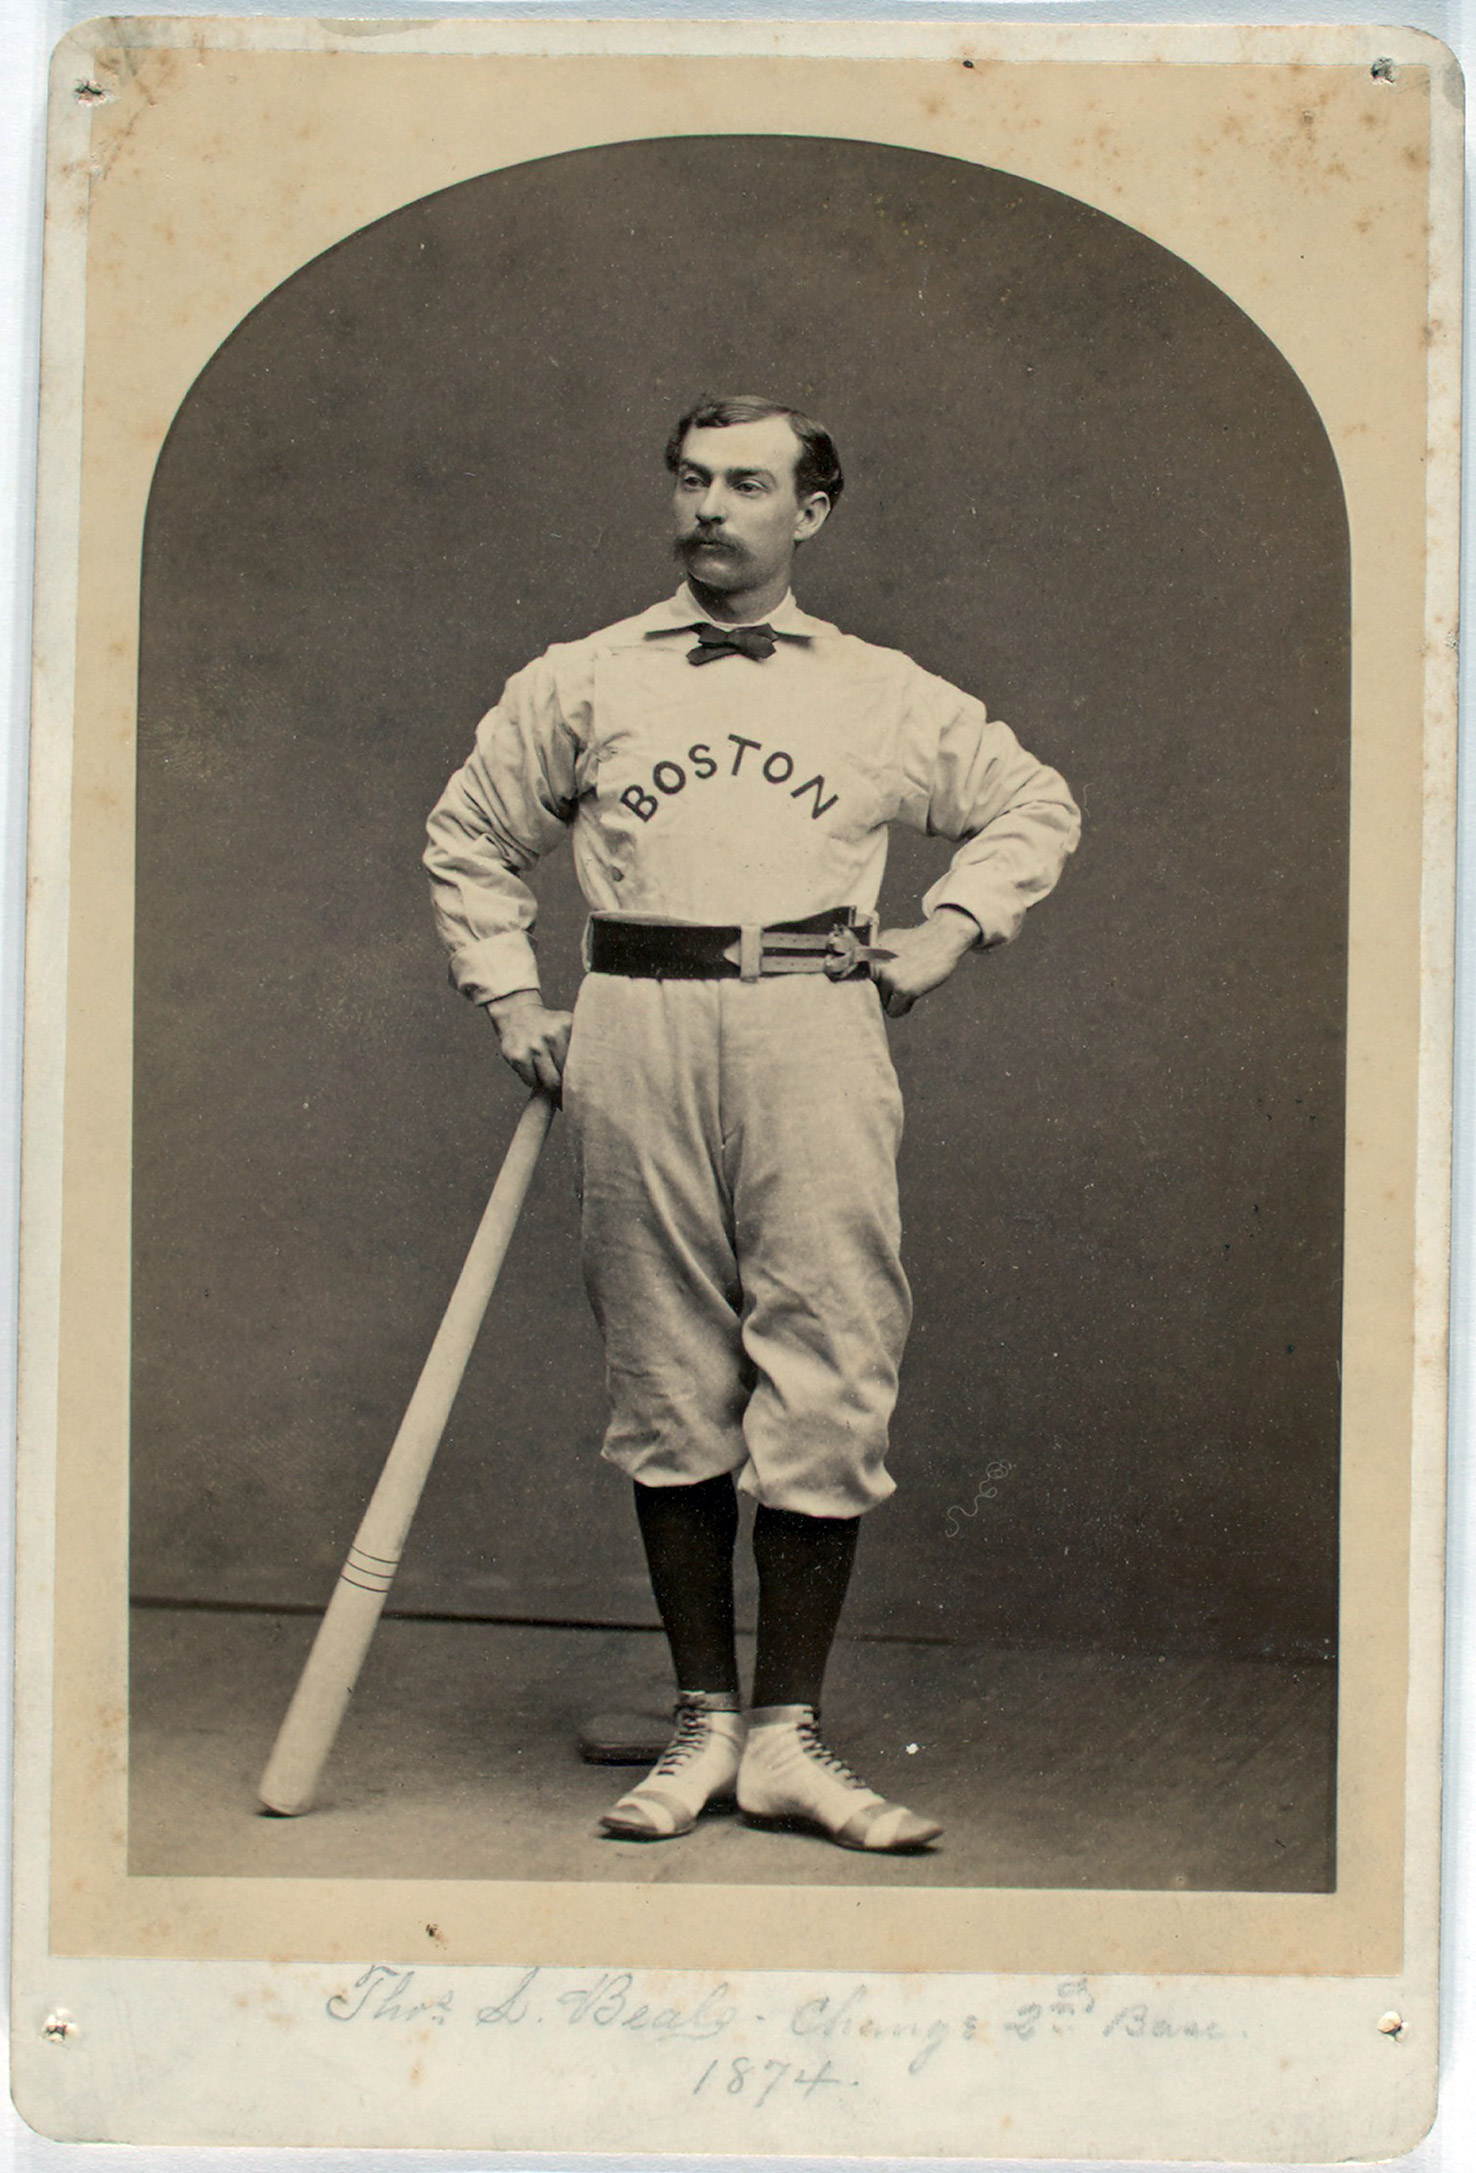 Tommy Beals, 1874 Change 2nd base. Boston. From the A. G. Spalding Baseball Collection.